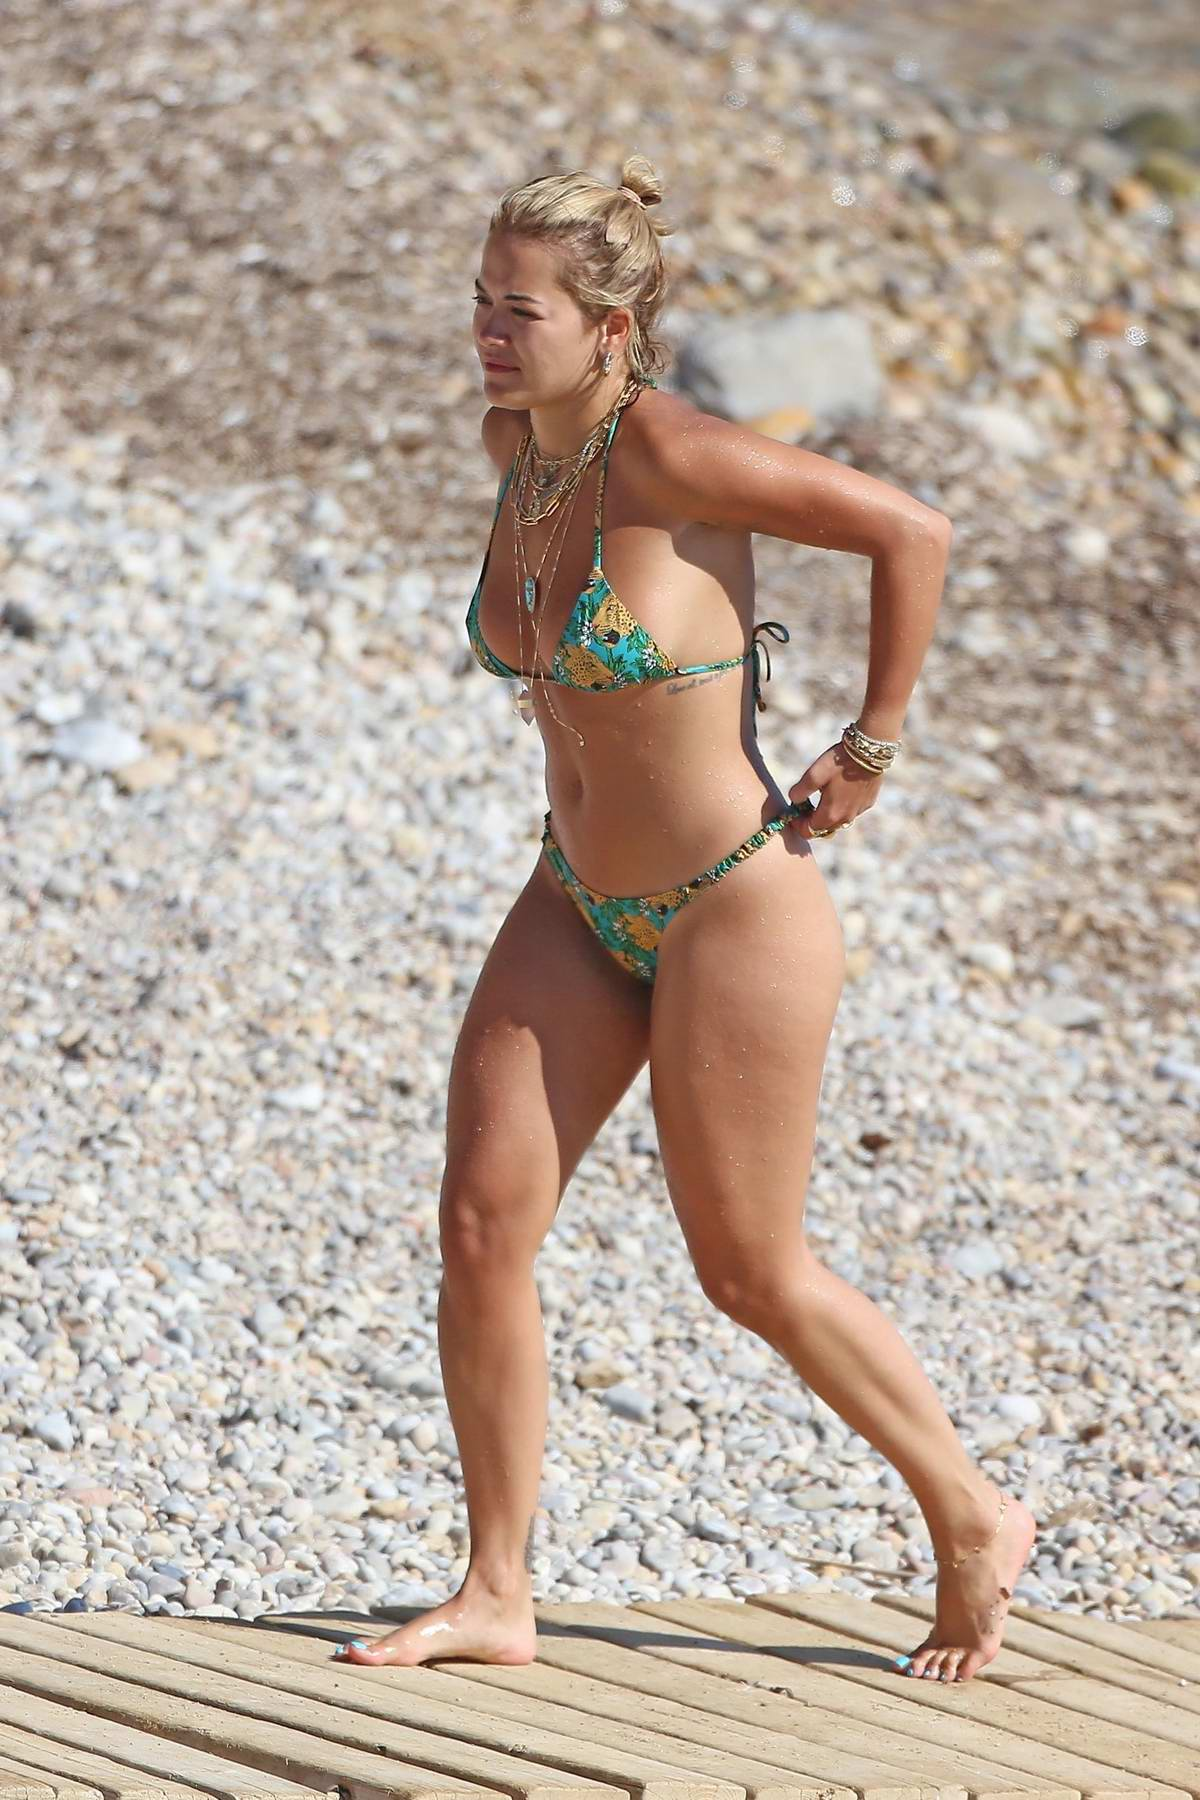 Rita Ora sports a jaguar print bikini while enjoying the beach with friends while on her summer holiday in Ibiza, Spain